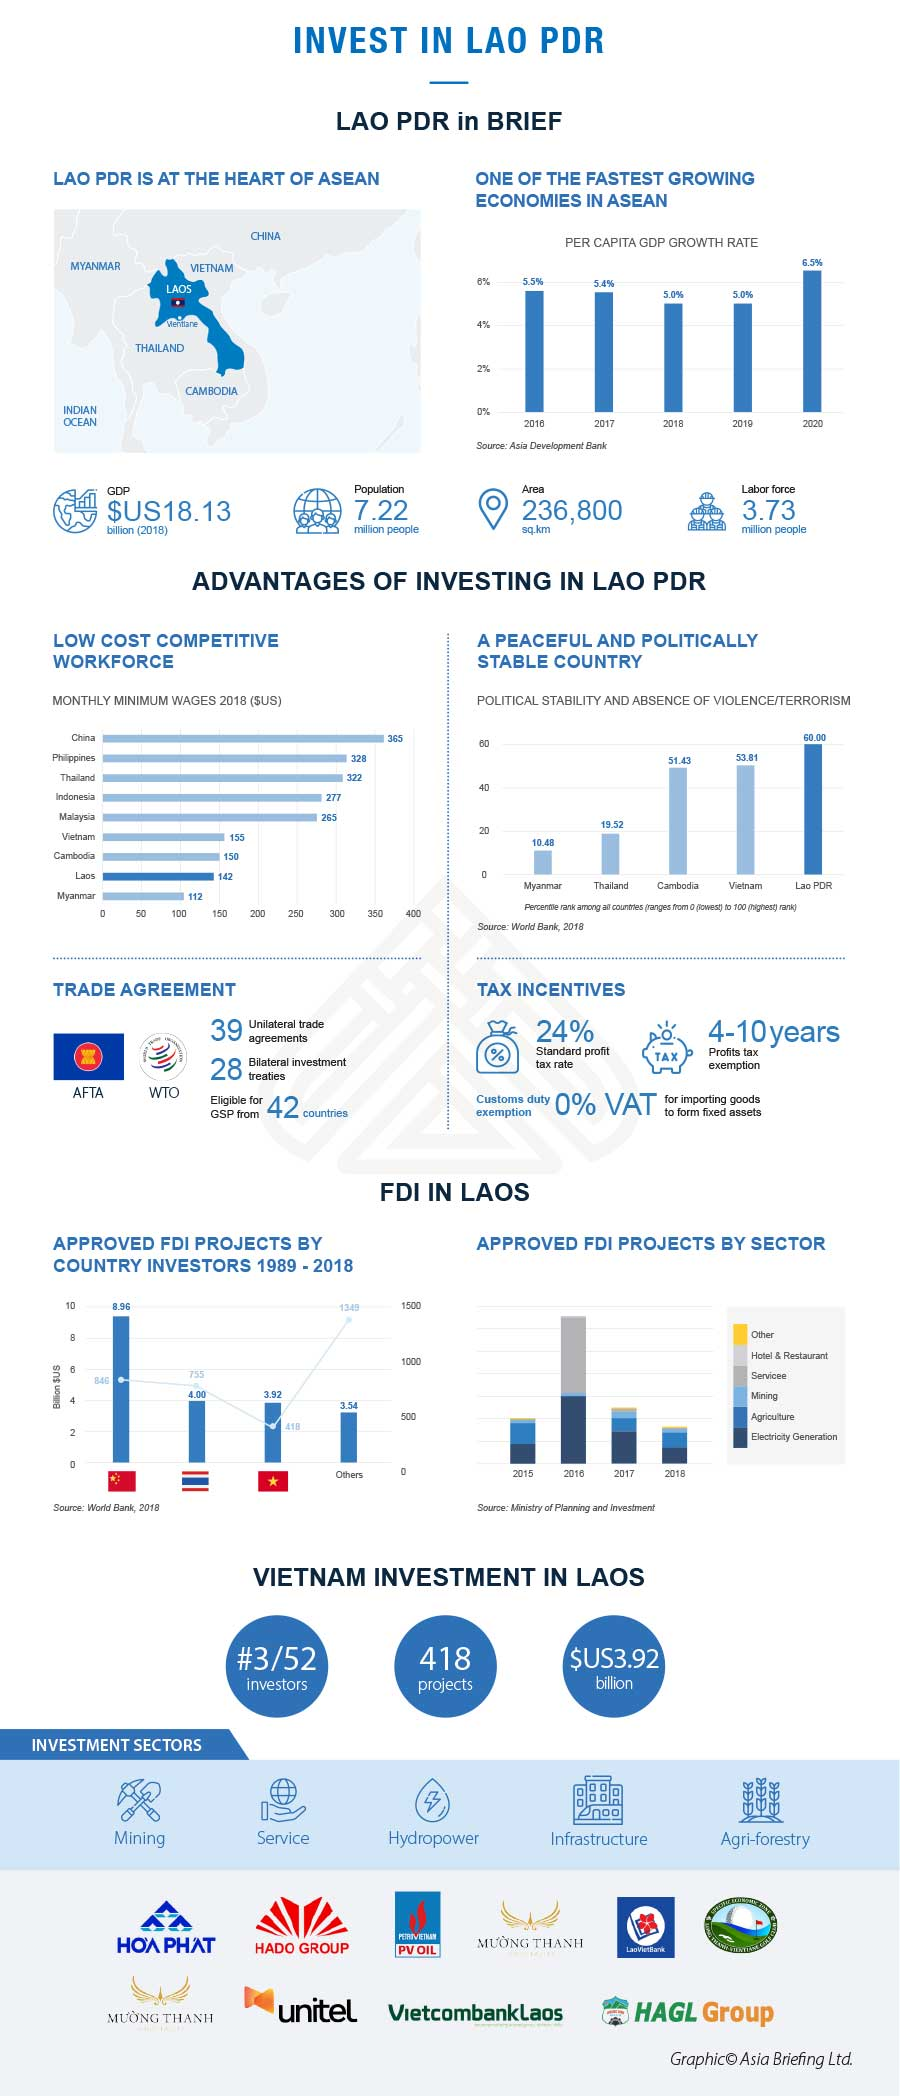 Investing in Laos - At a Glance